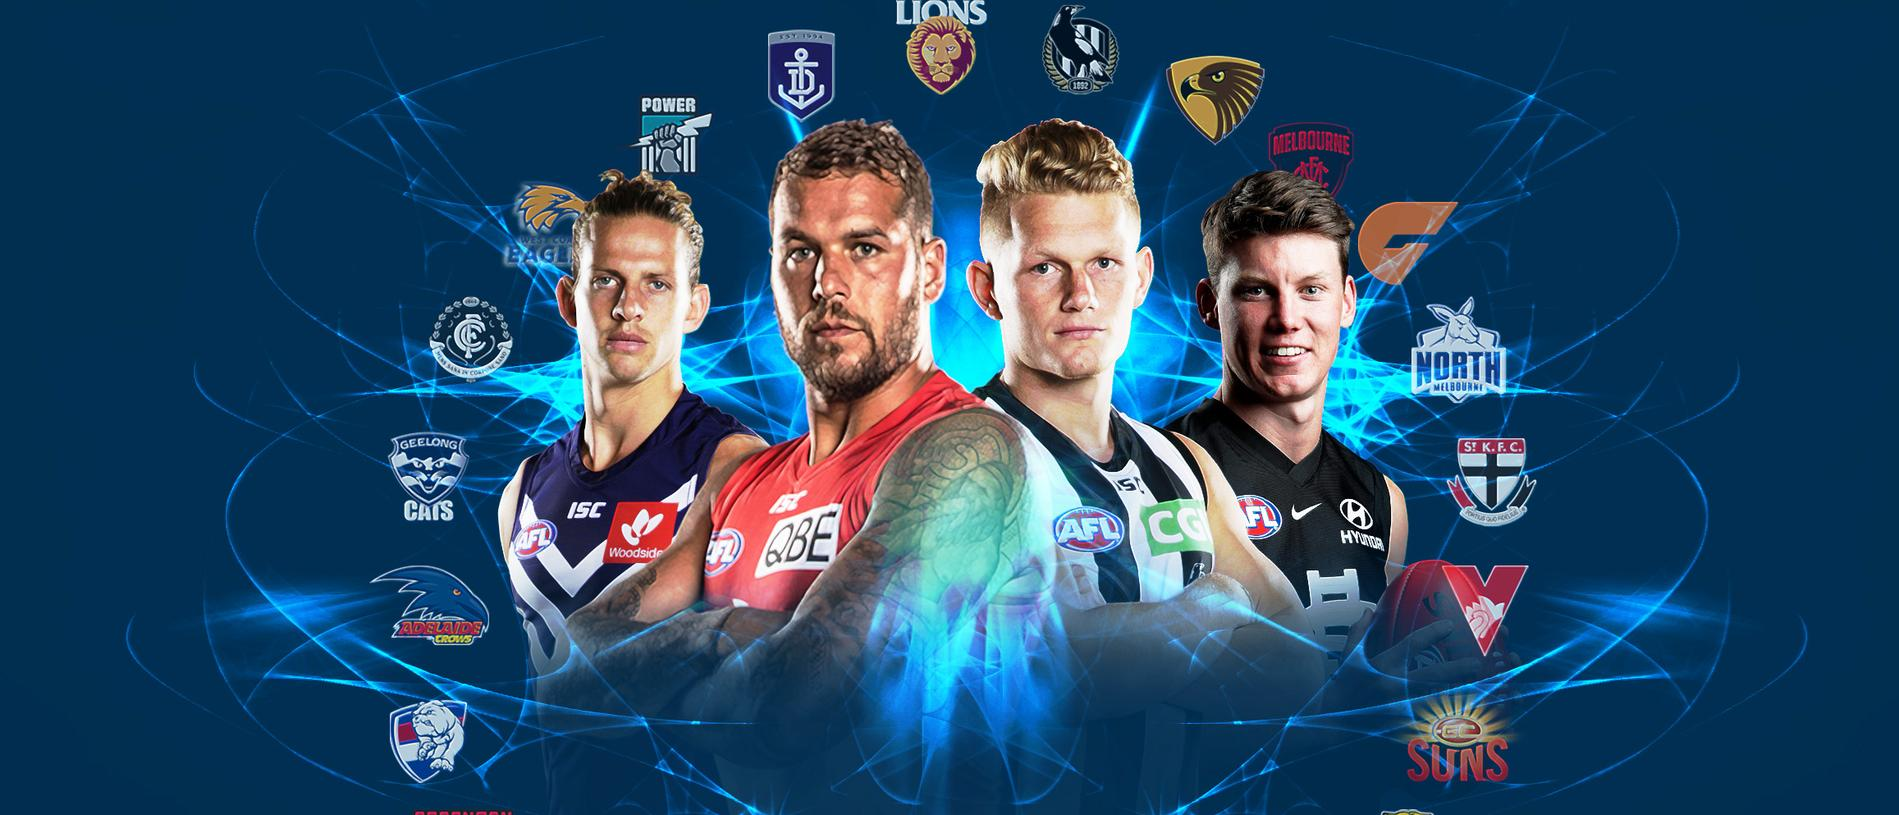 Fox Footy nominates the best 22s at every club a few months out from Round 1 of 2019.